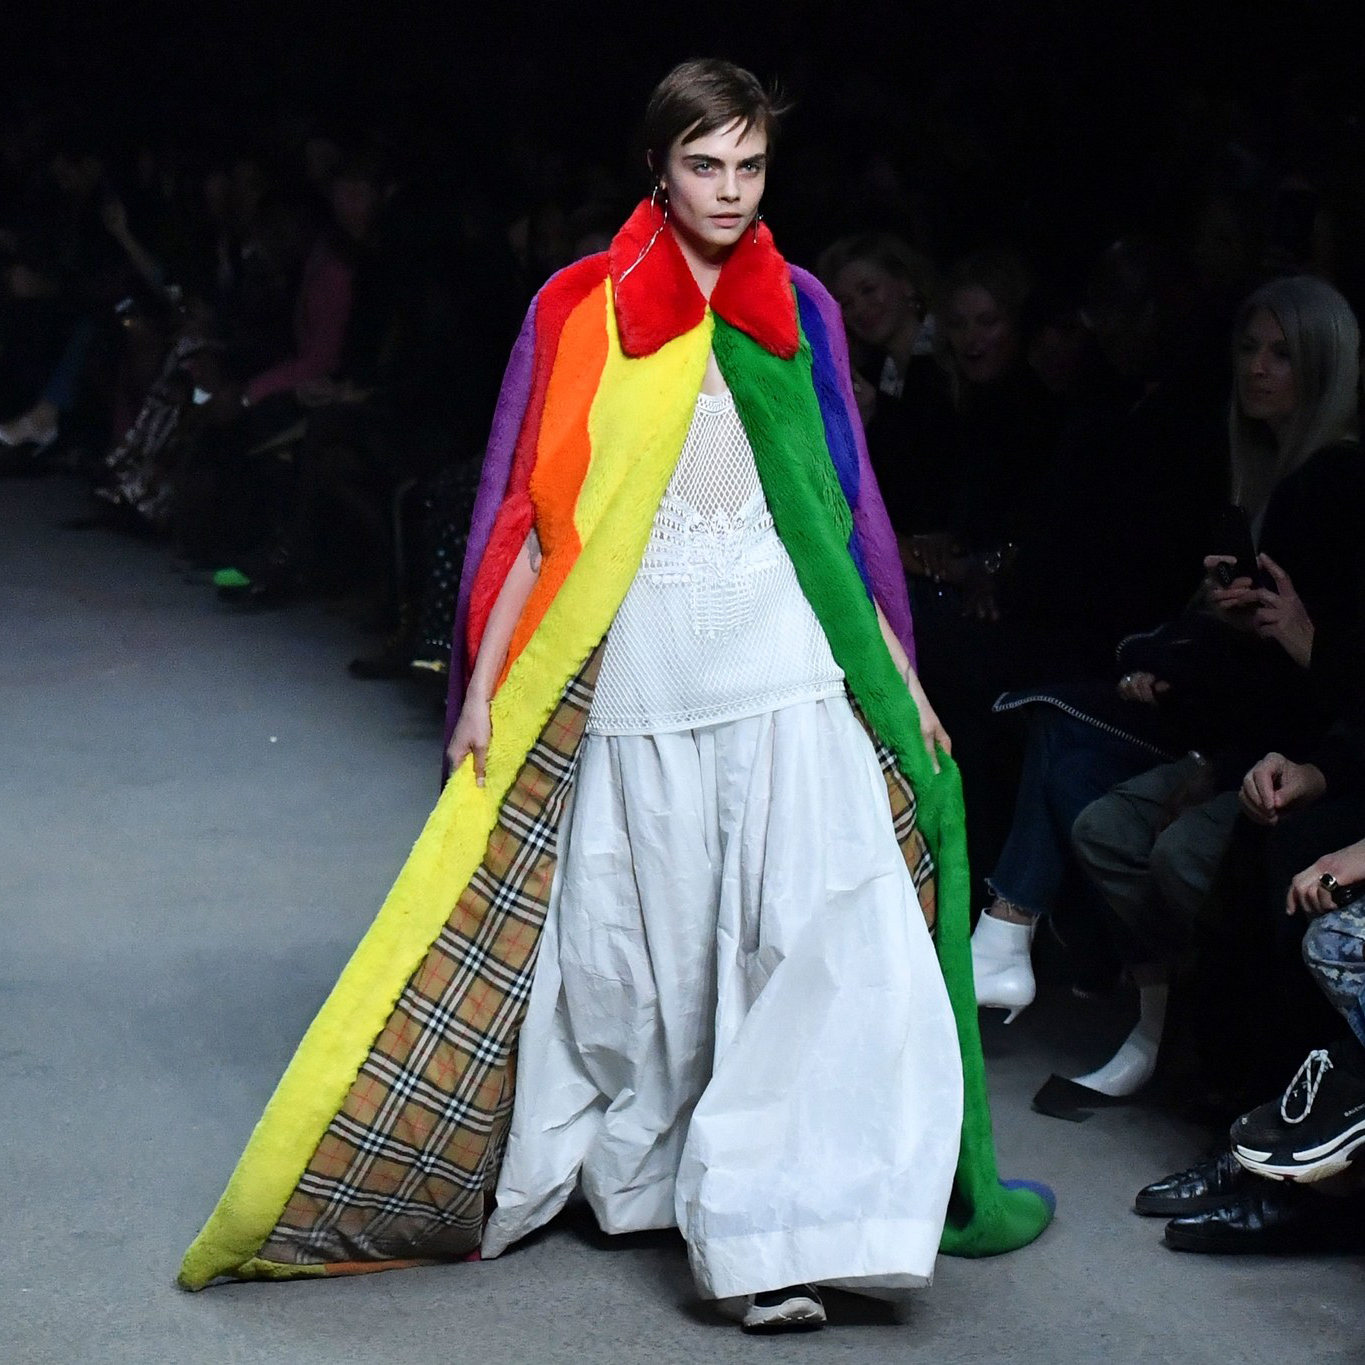 Christopher Bailey's psychedelic swansong